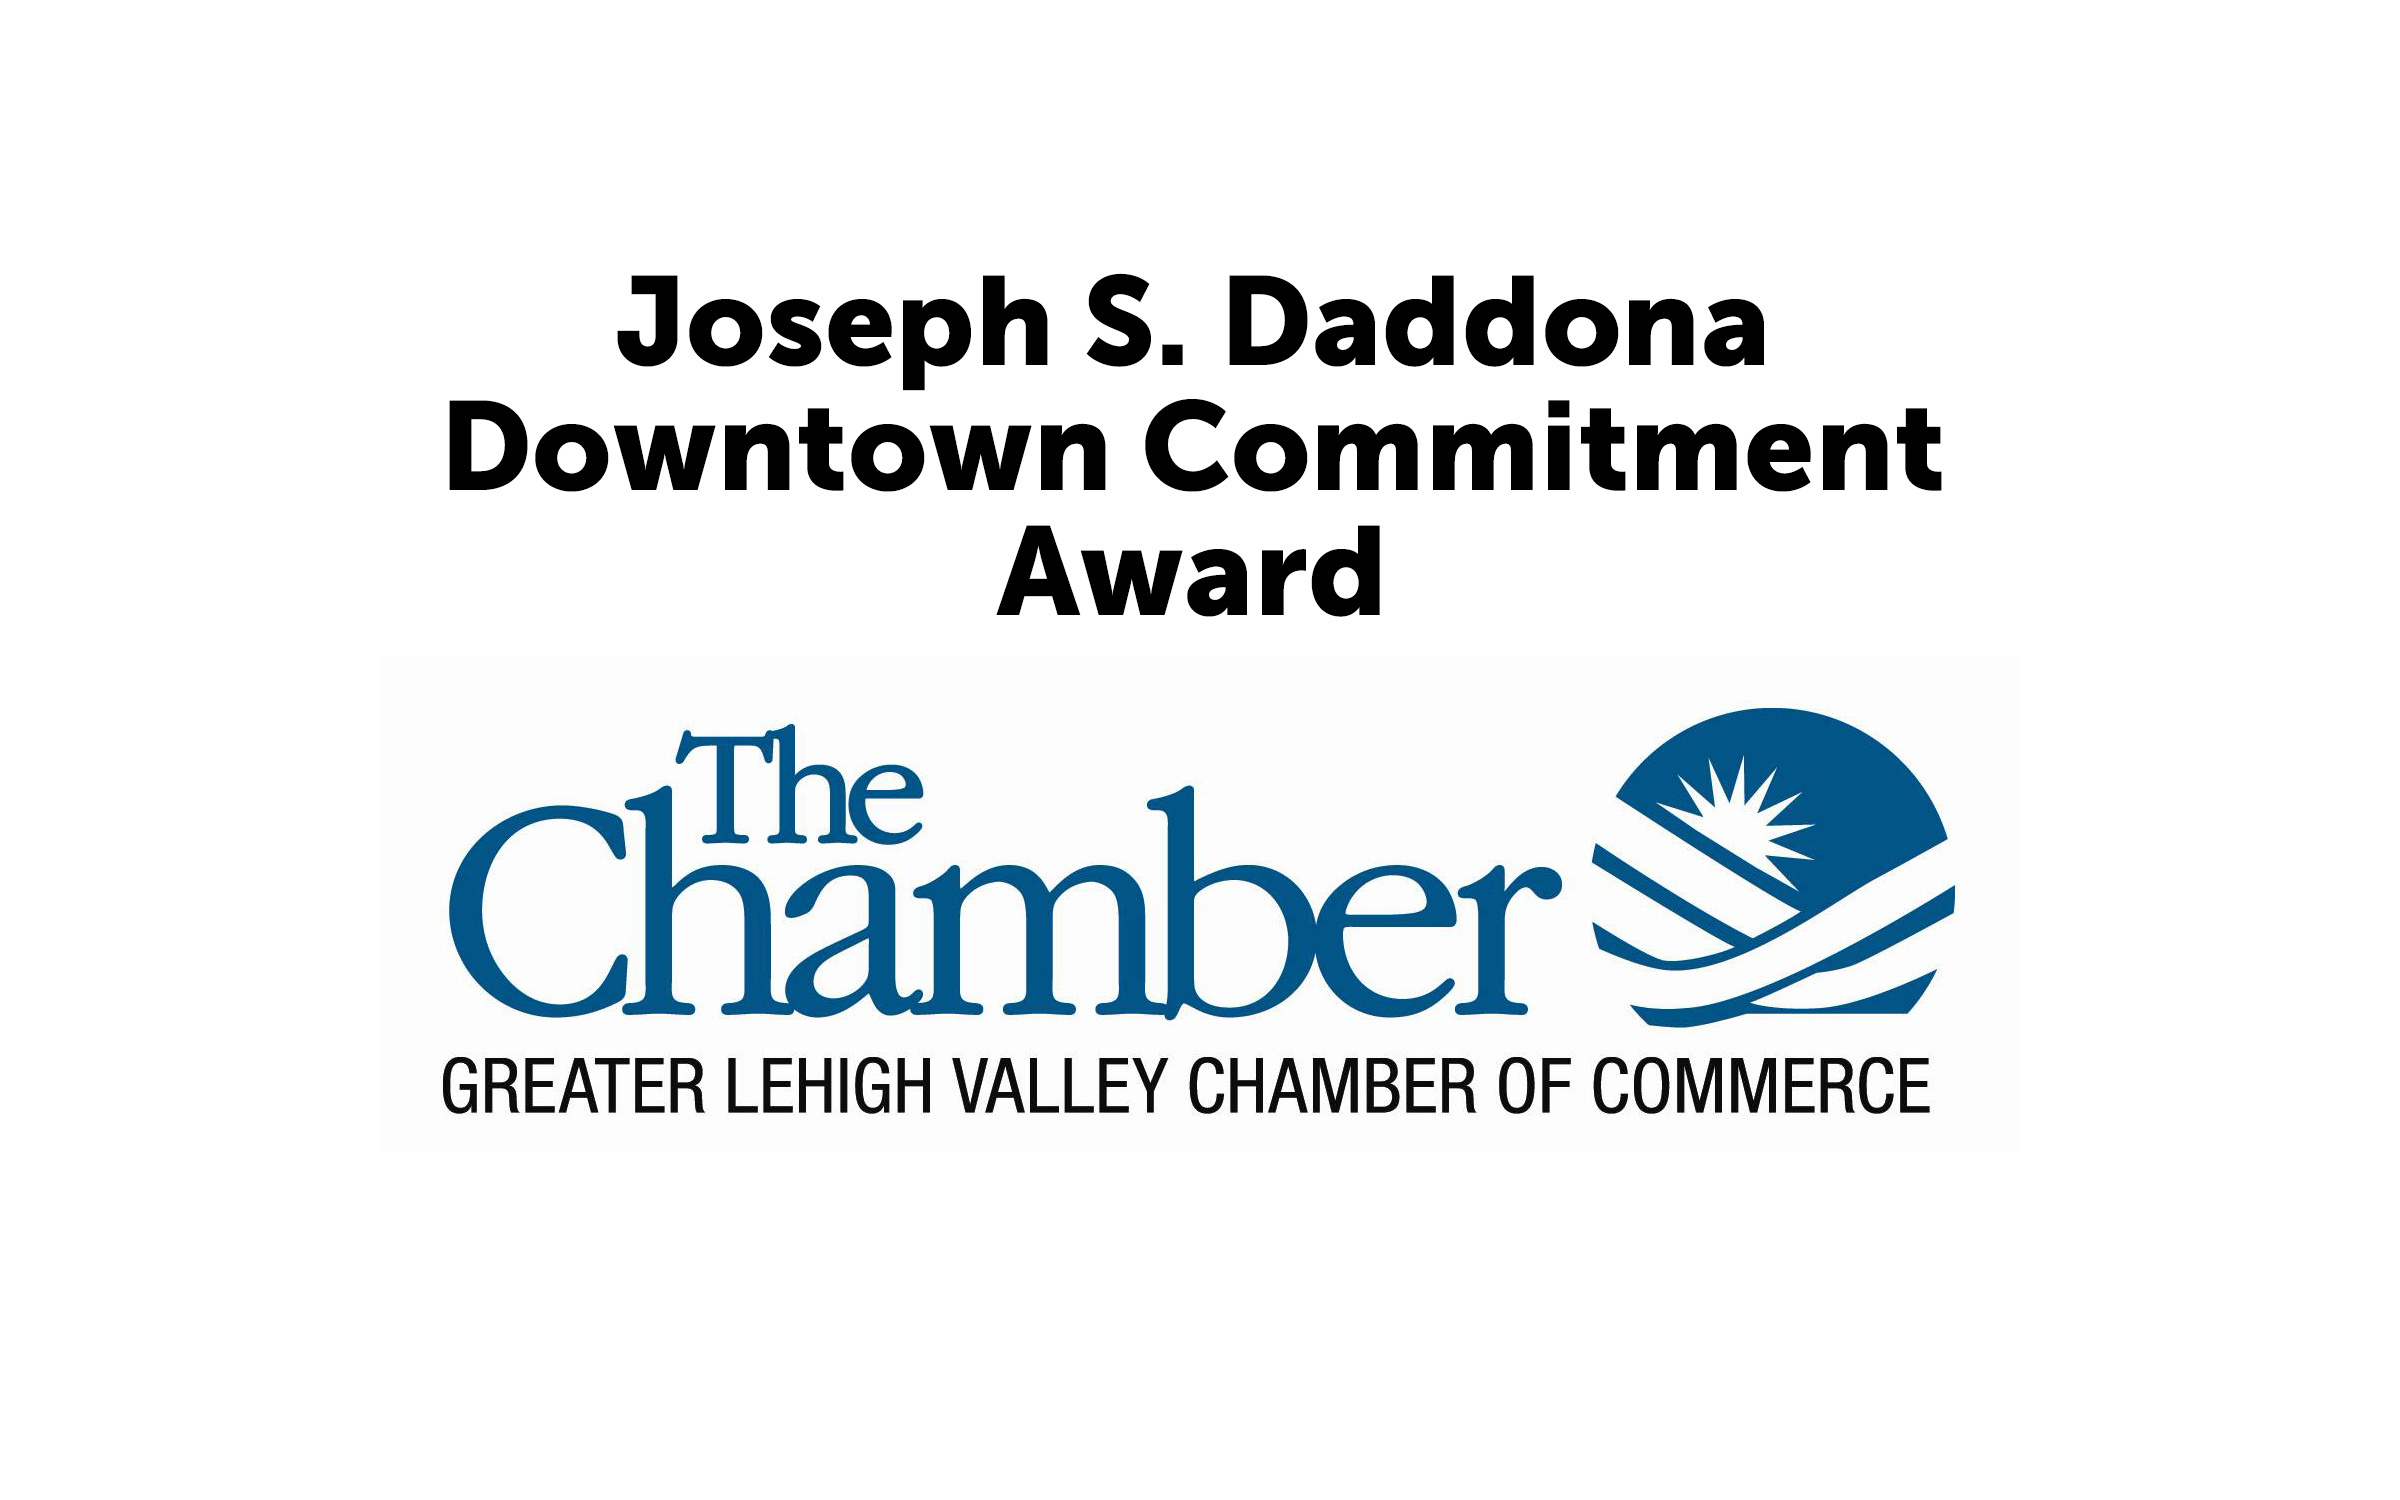 Trifecta Technologies received the Downtown Commitment Award